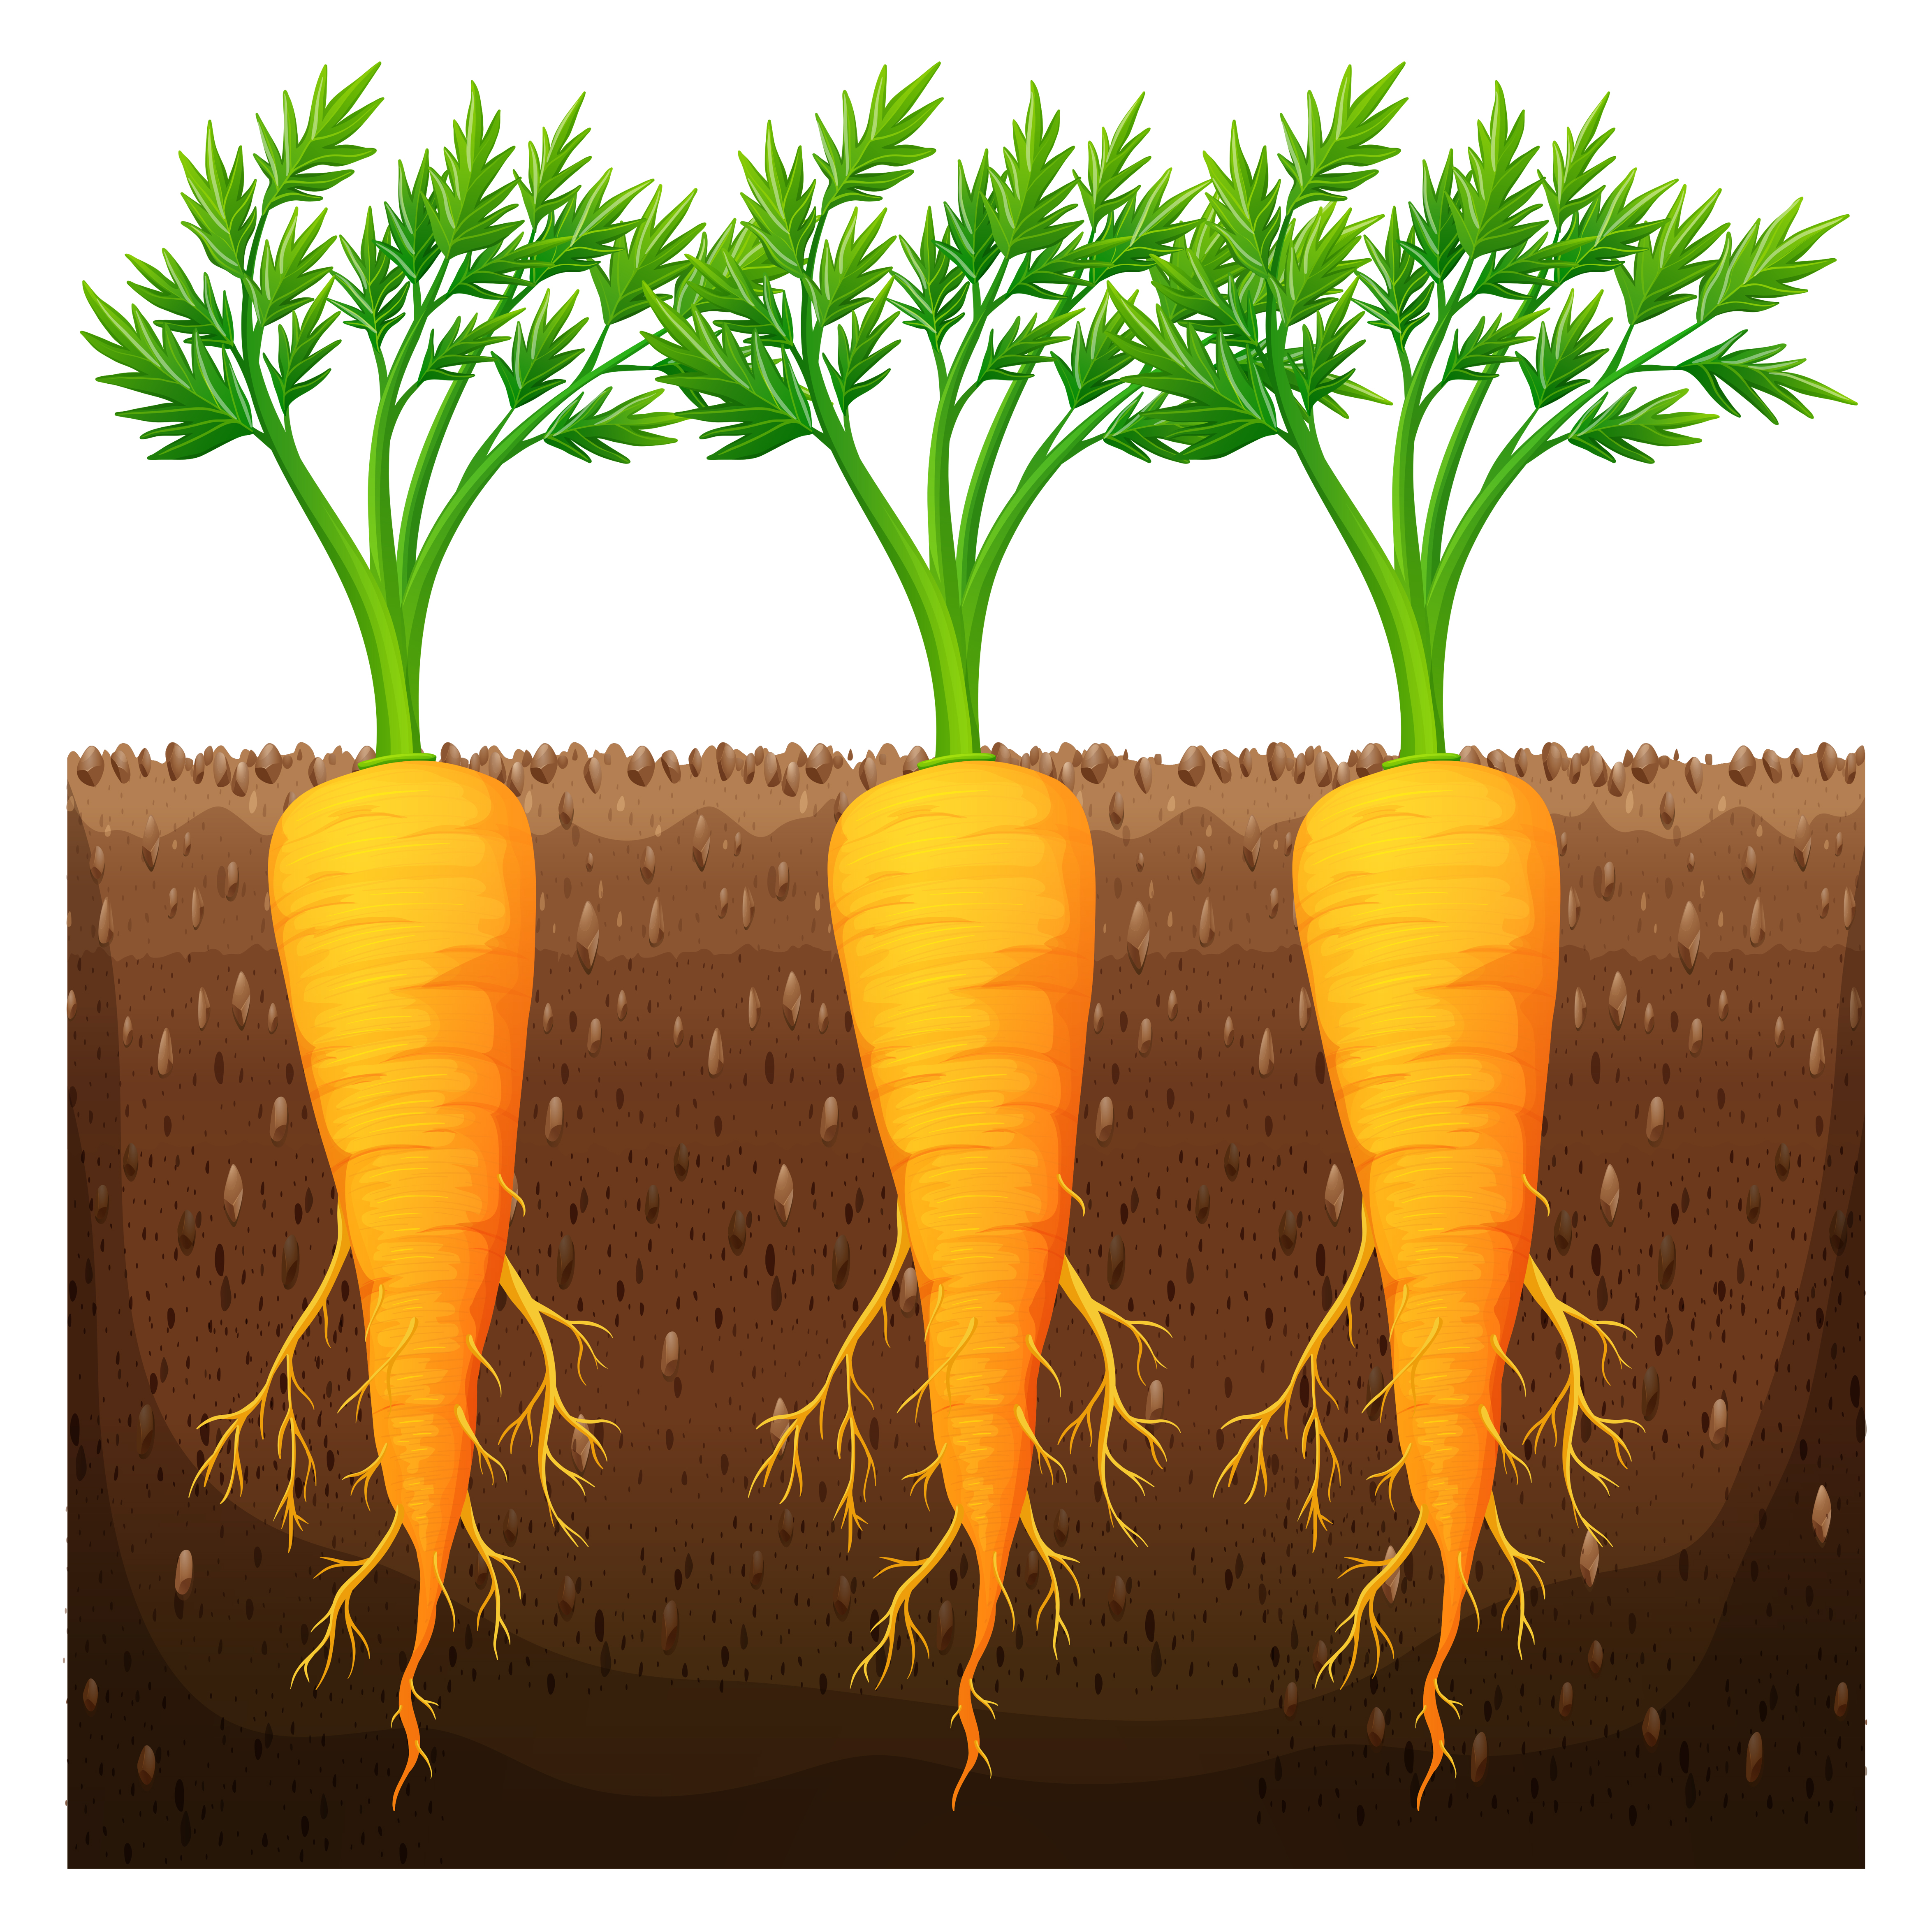 Fresh carrot growing in the field - Download Free Vectors ...